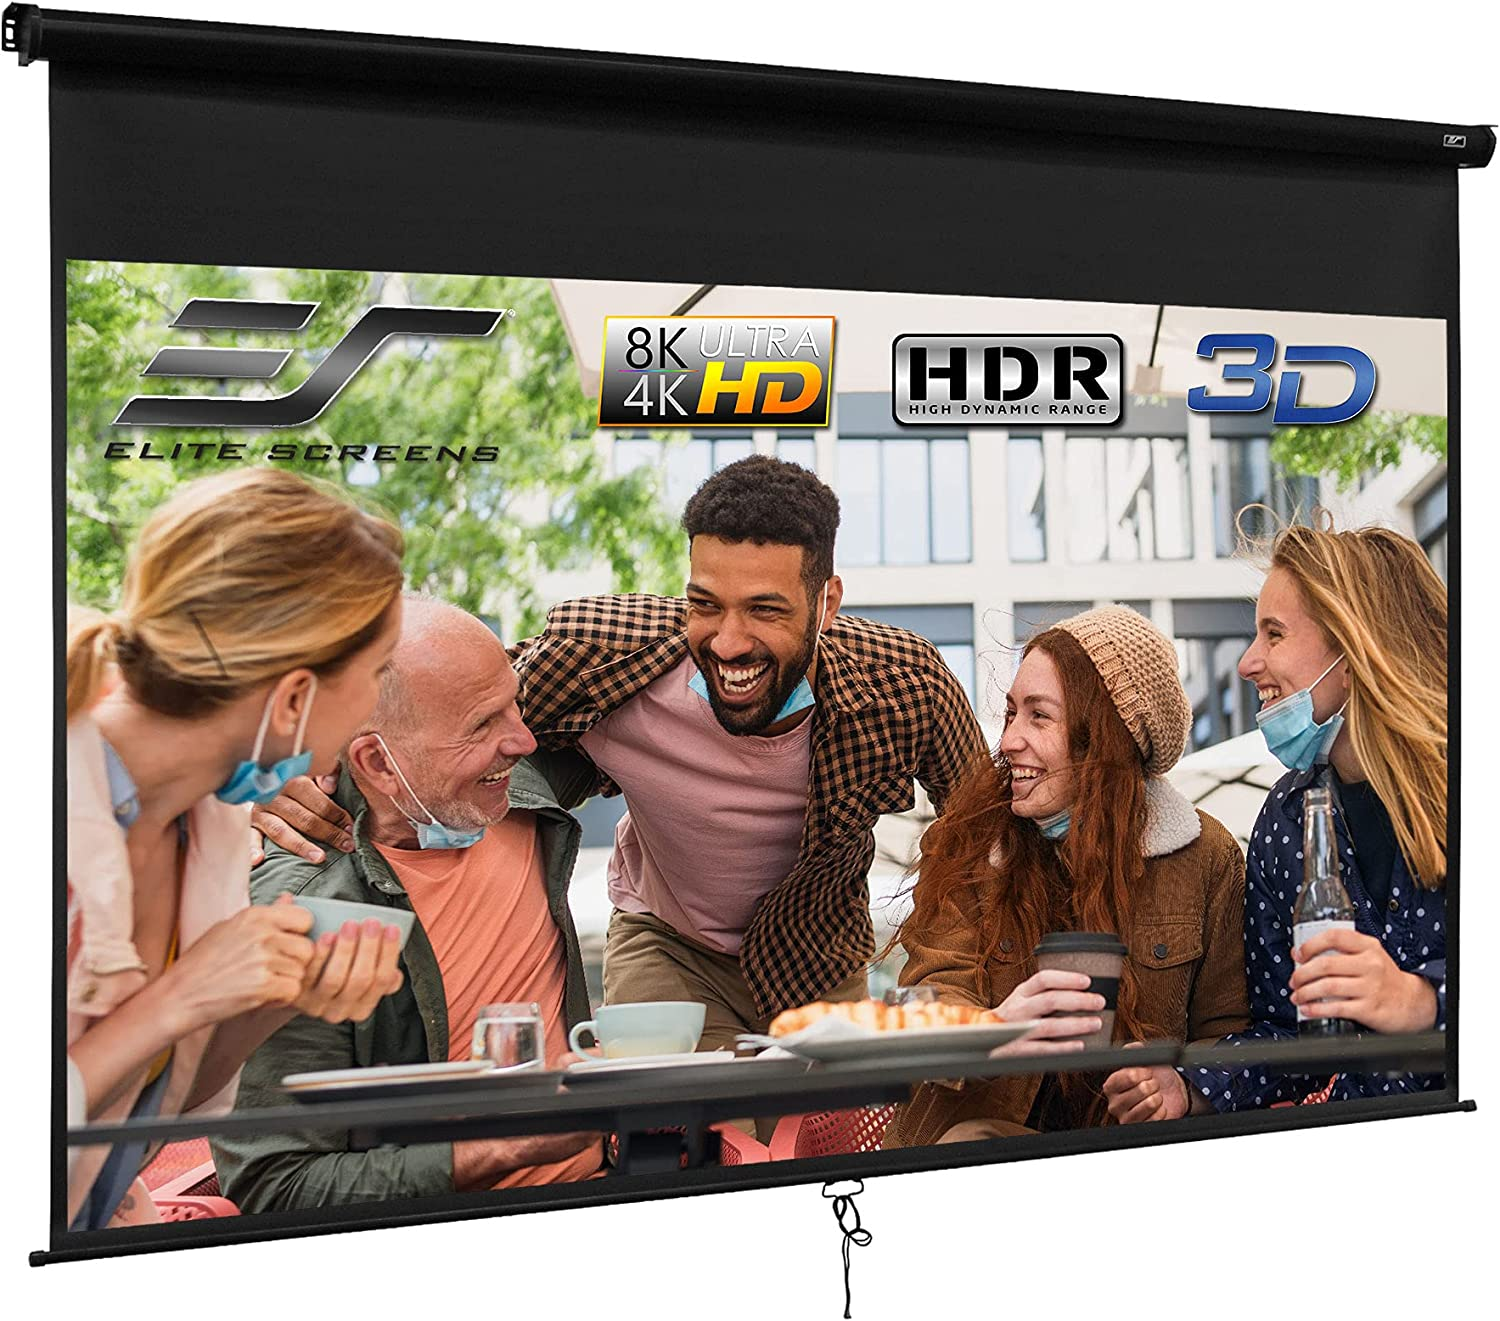 Elite Screens Manual B, 120-INCH, Manual Pull Down Projector Screen 4K / 8K Ultra HDR 3D Ready with Slow Retract Mechanism, 2-YEAR WARRANTY, M120X, 16:10, black